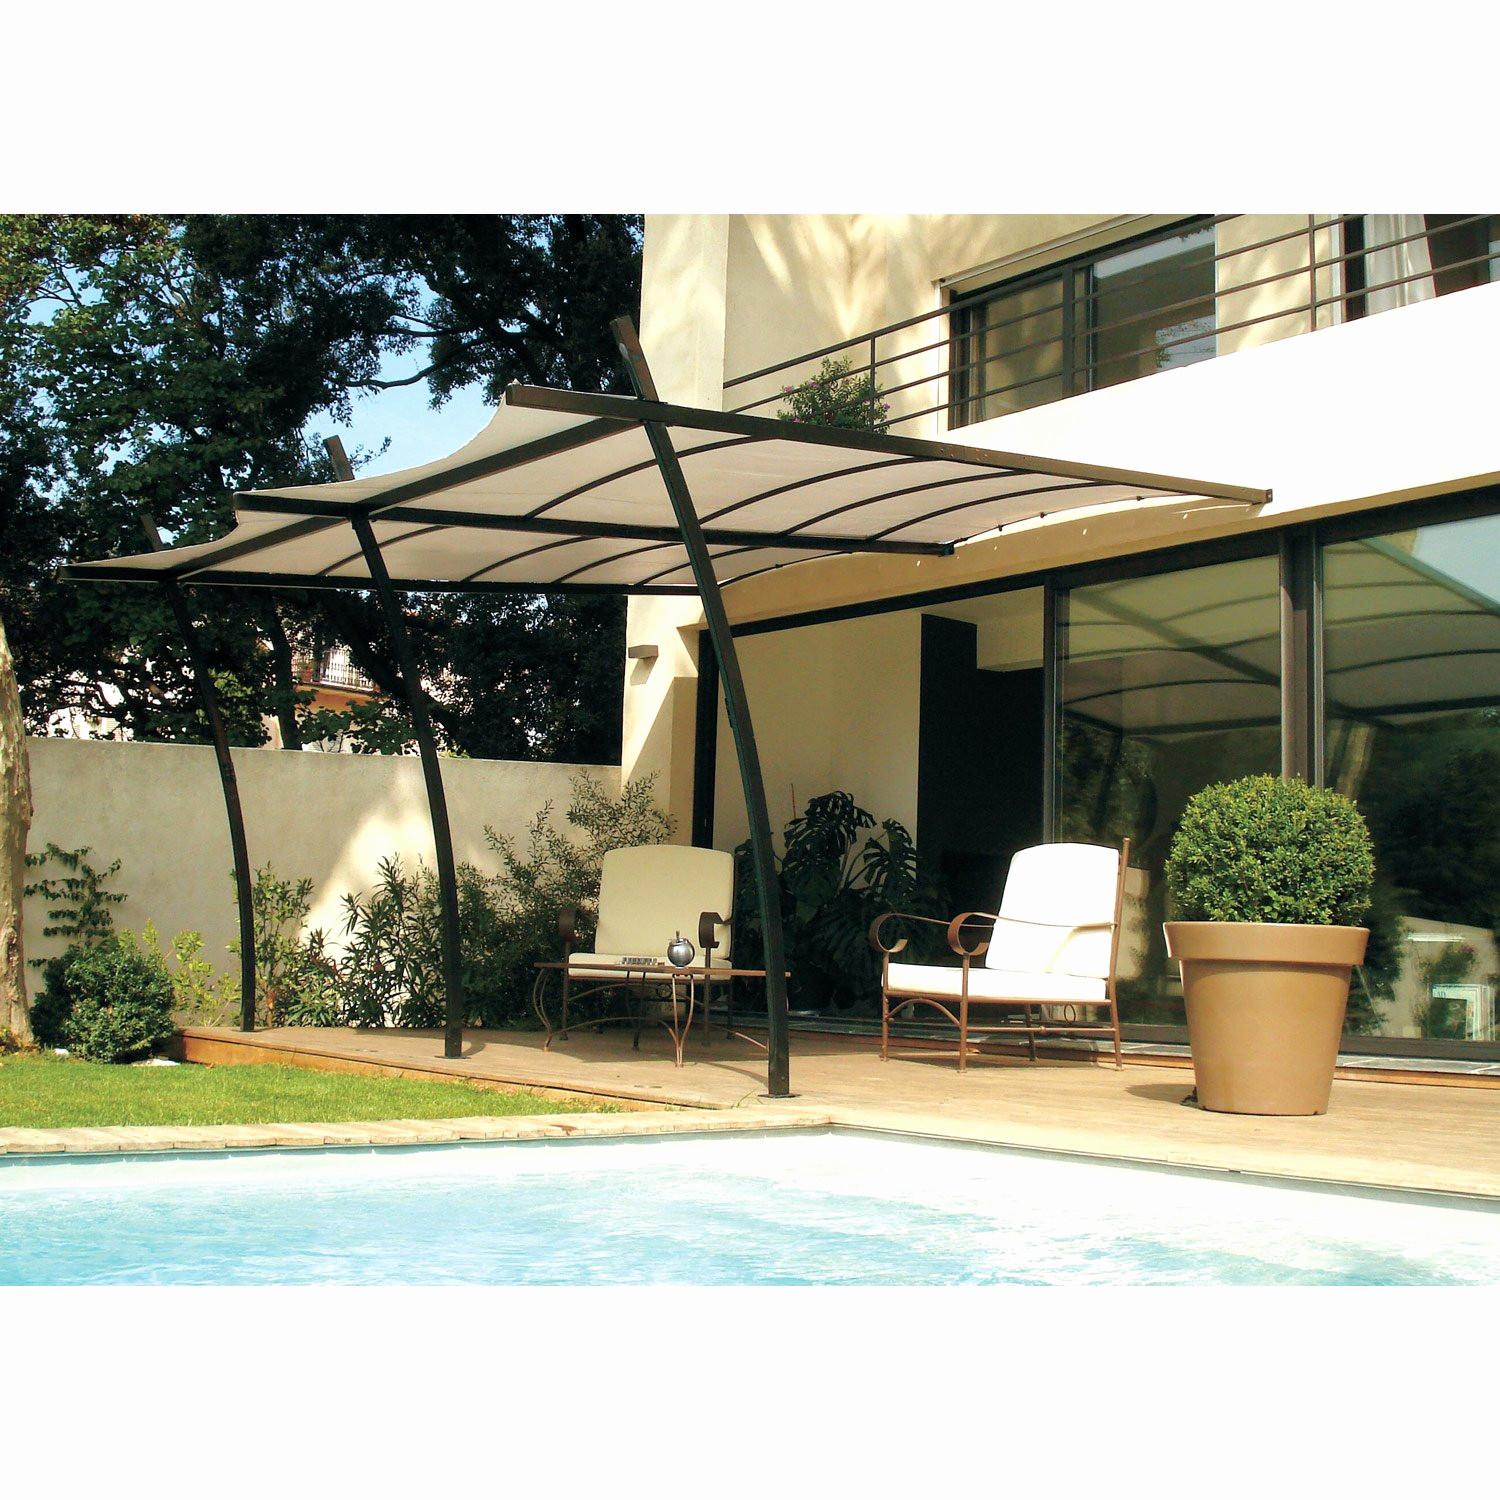 Pergola Bioclimatique En Kit Pas Cher Luxe Photos Le Agréable Pergola Bioclimatique Leroy Merlin Conception Pendant La